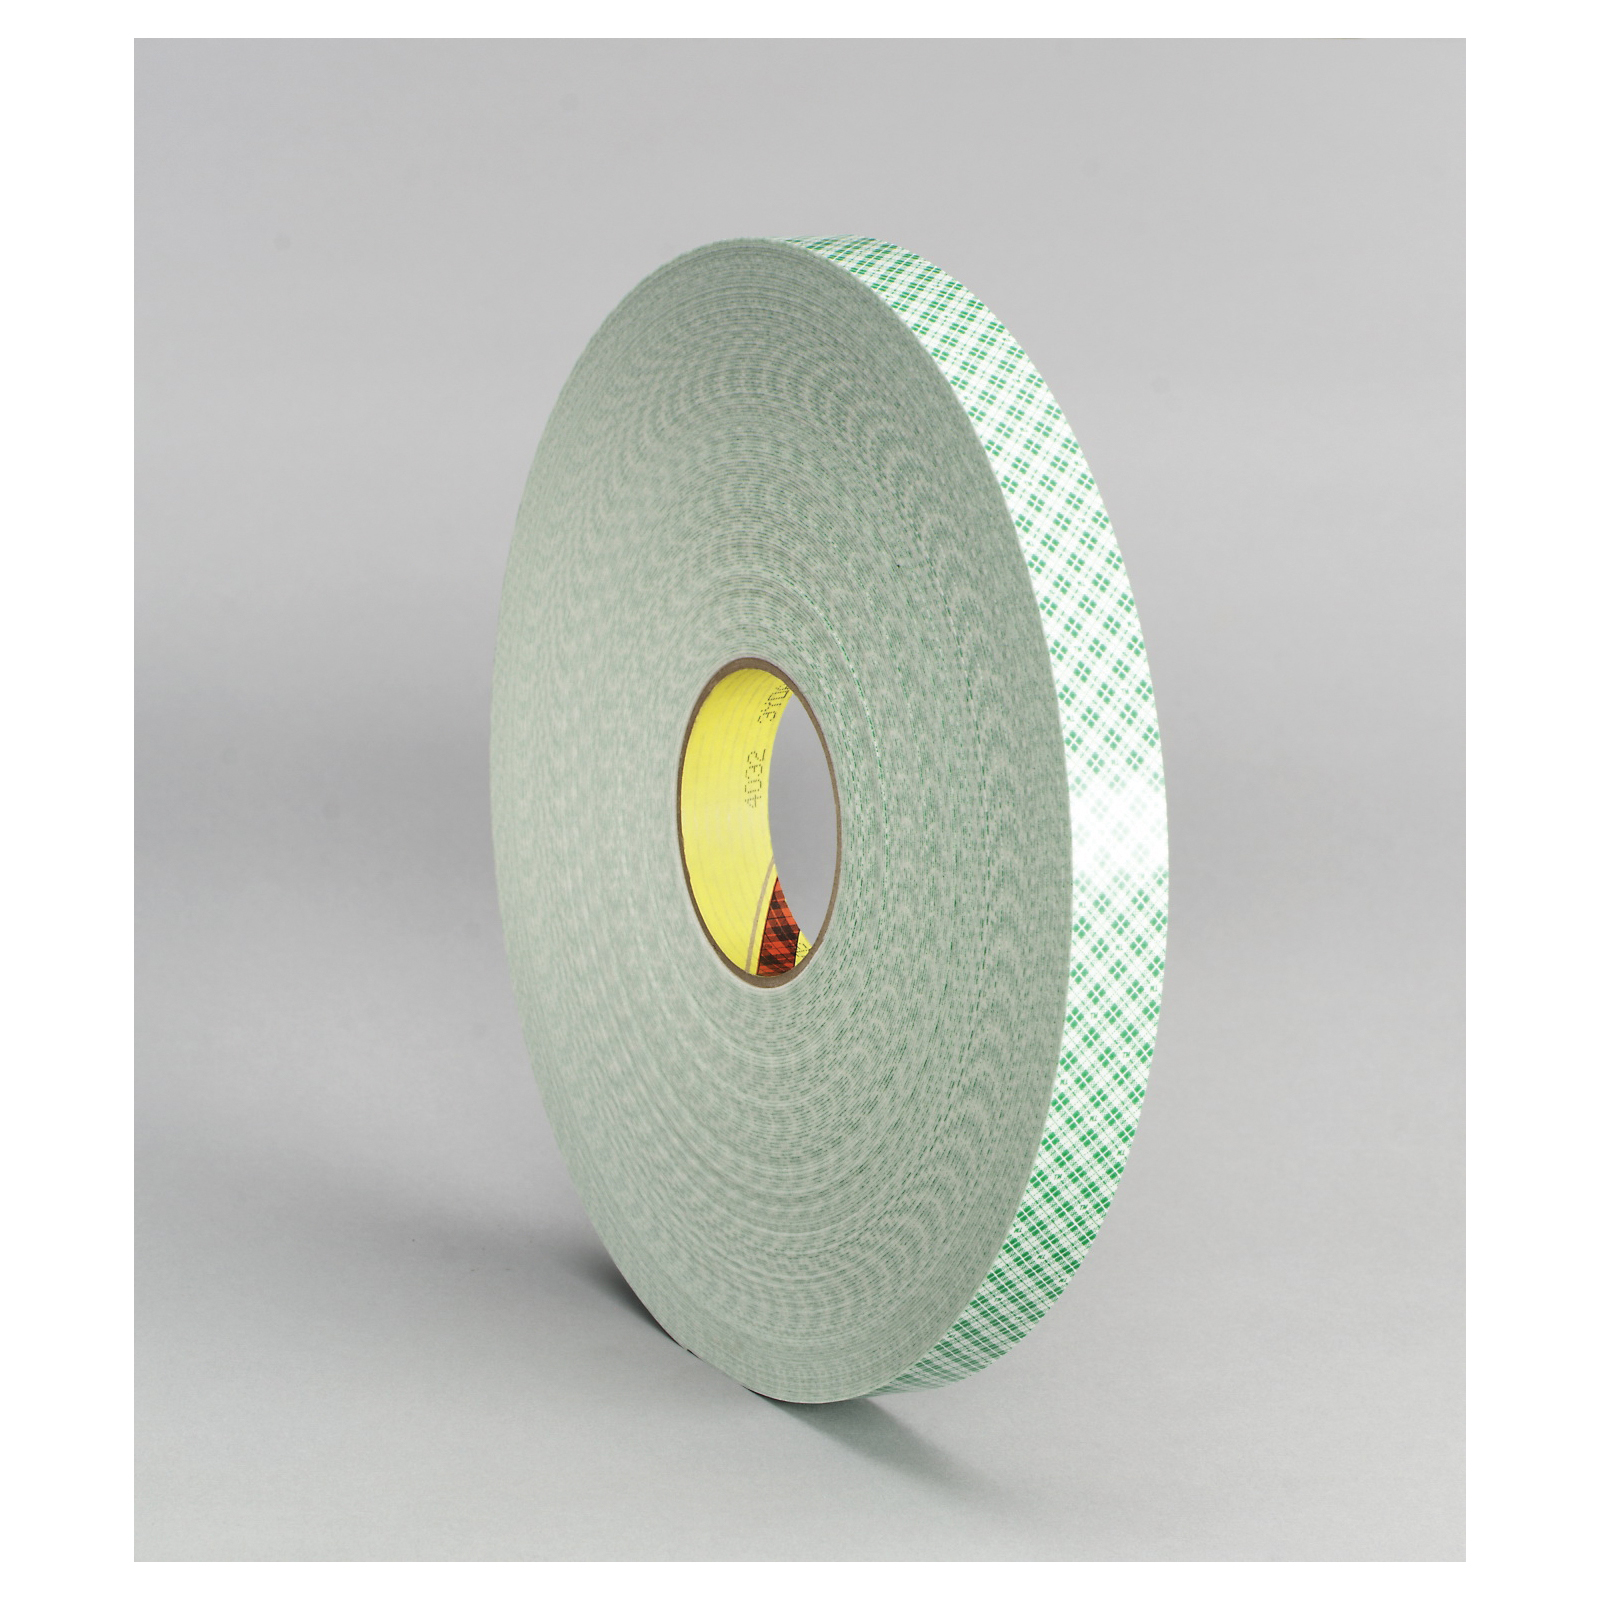 3M™ 021200-04869 Double Coated Tape, 72 yd L x 2 in W, 31 mil THK, Acrylic Adhesive, Urethane Foam Backing, Off-White